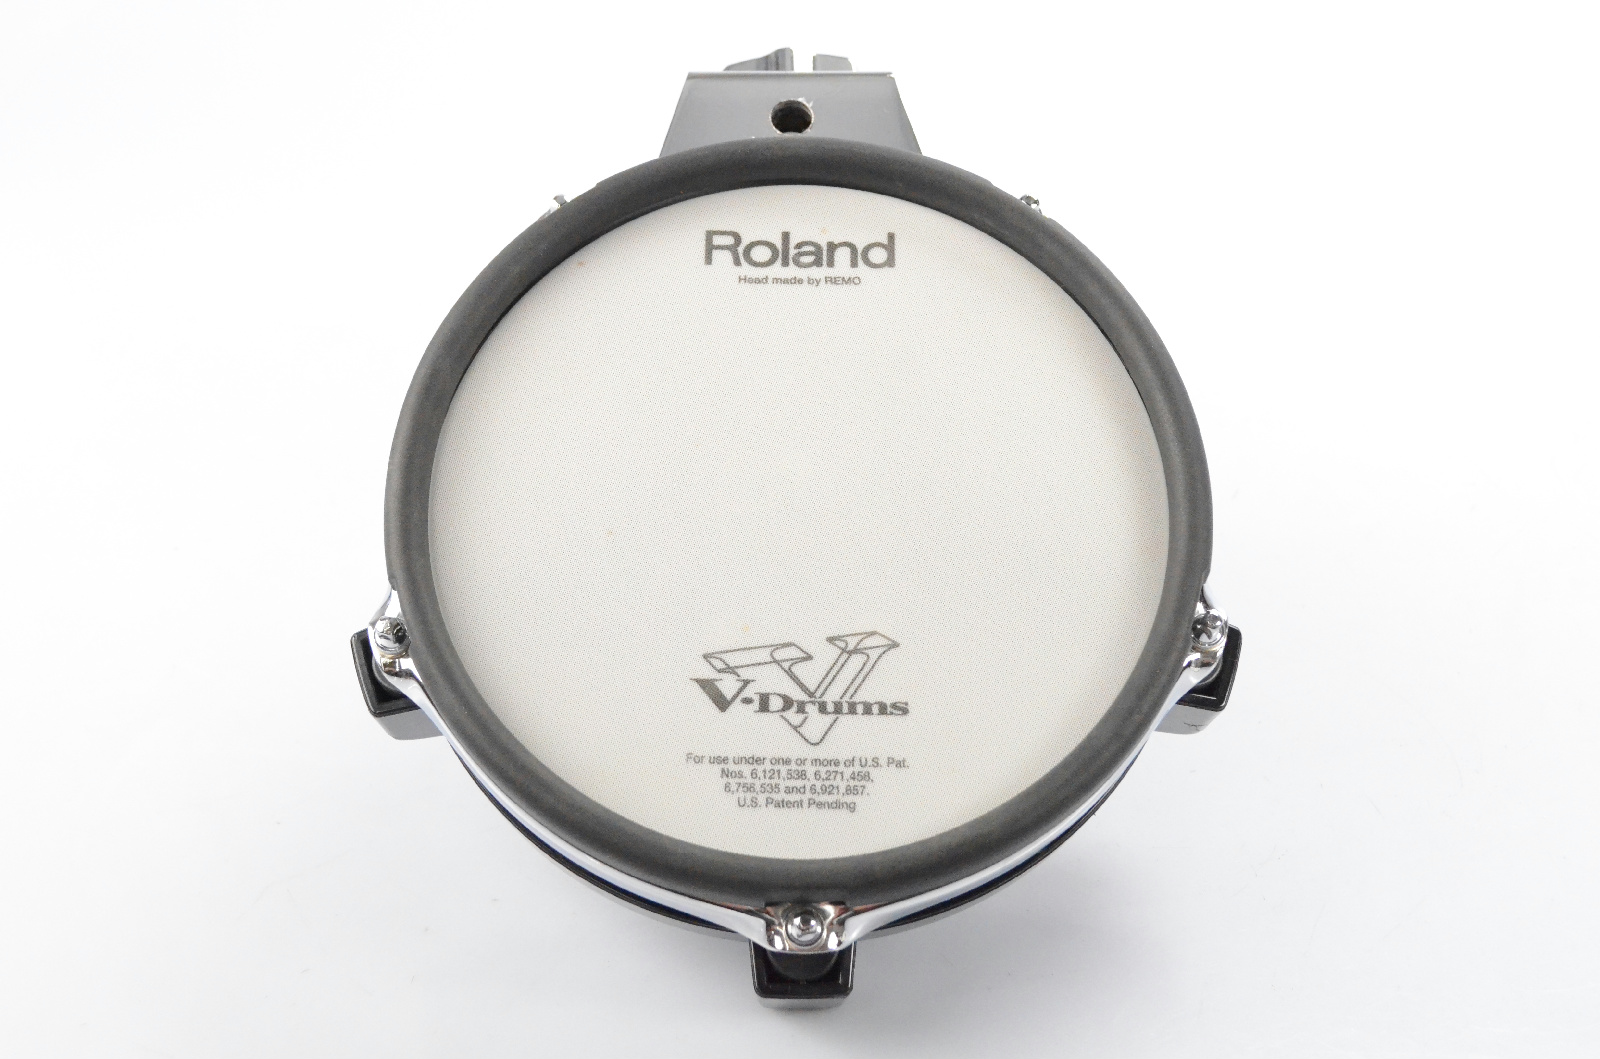 """Roland PD-85 8"""" Dual Trigger Electronic Drum Pad Trigger V-Drums PD85 #32193"""